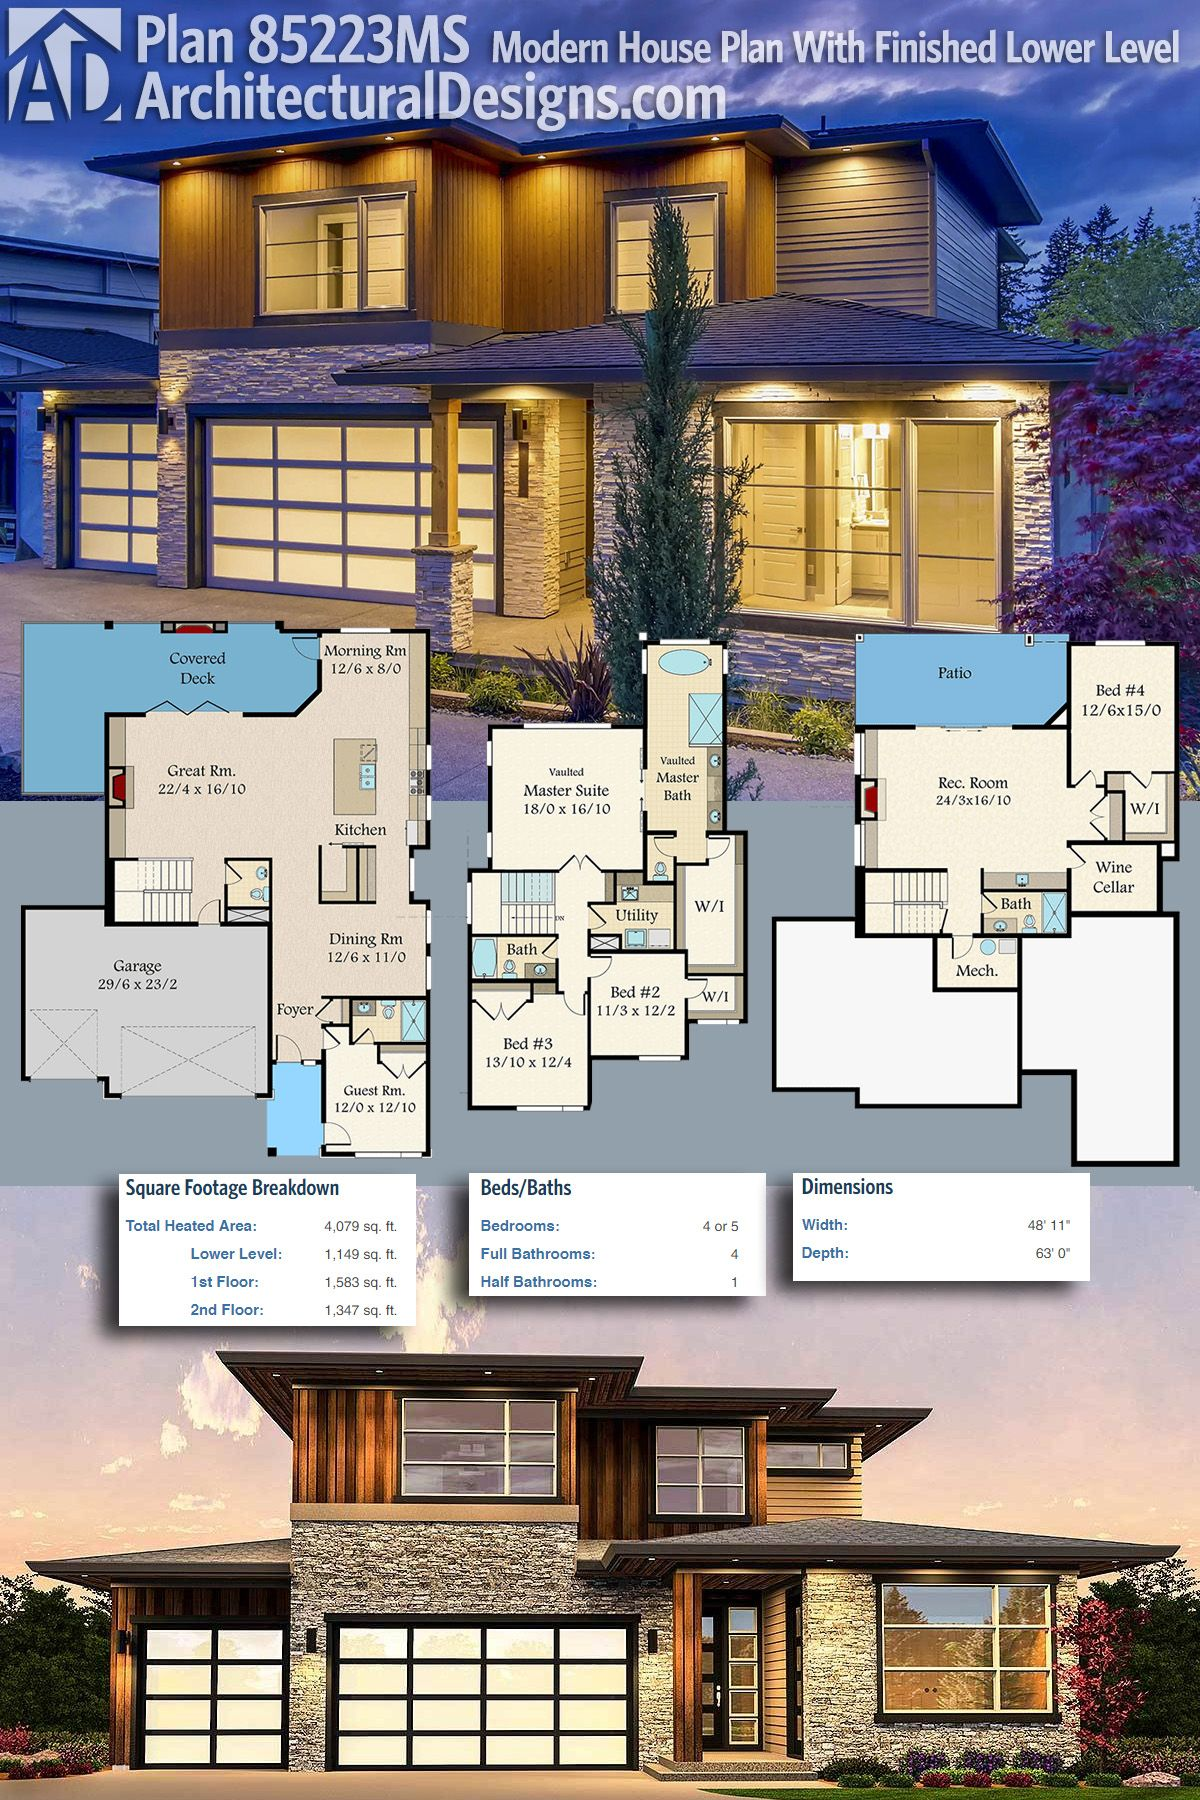 Plan 85223MS: Modern House Plan With Finished Lower Level